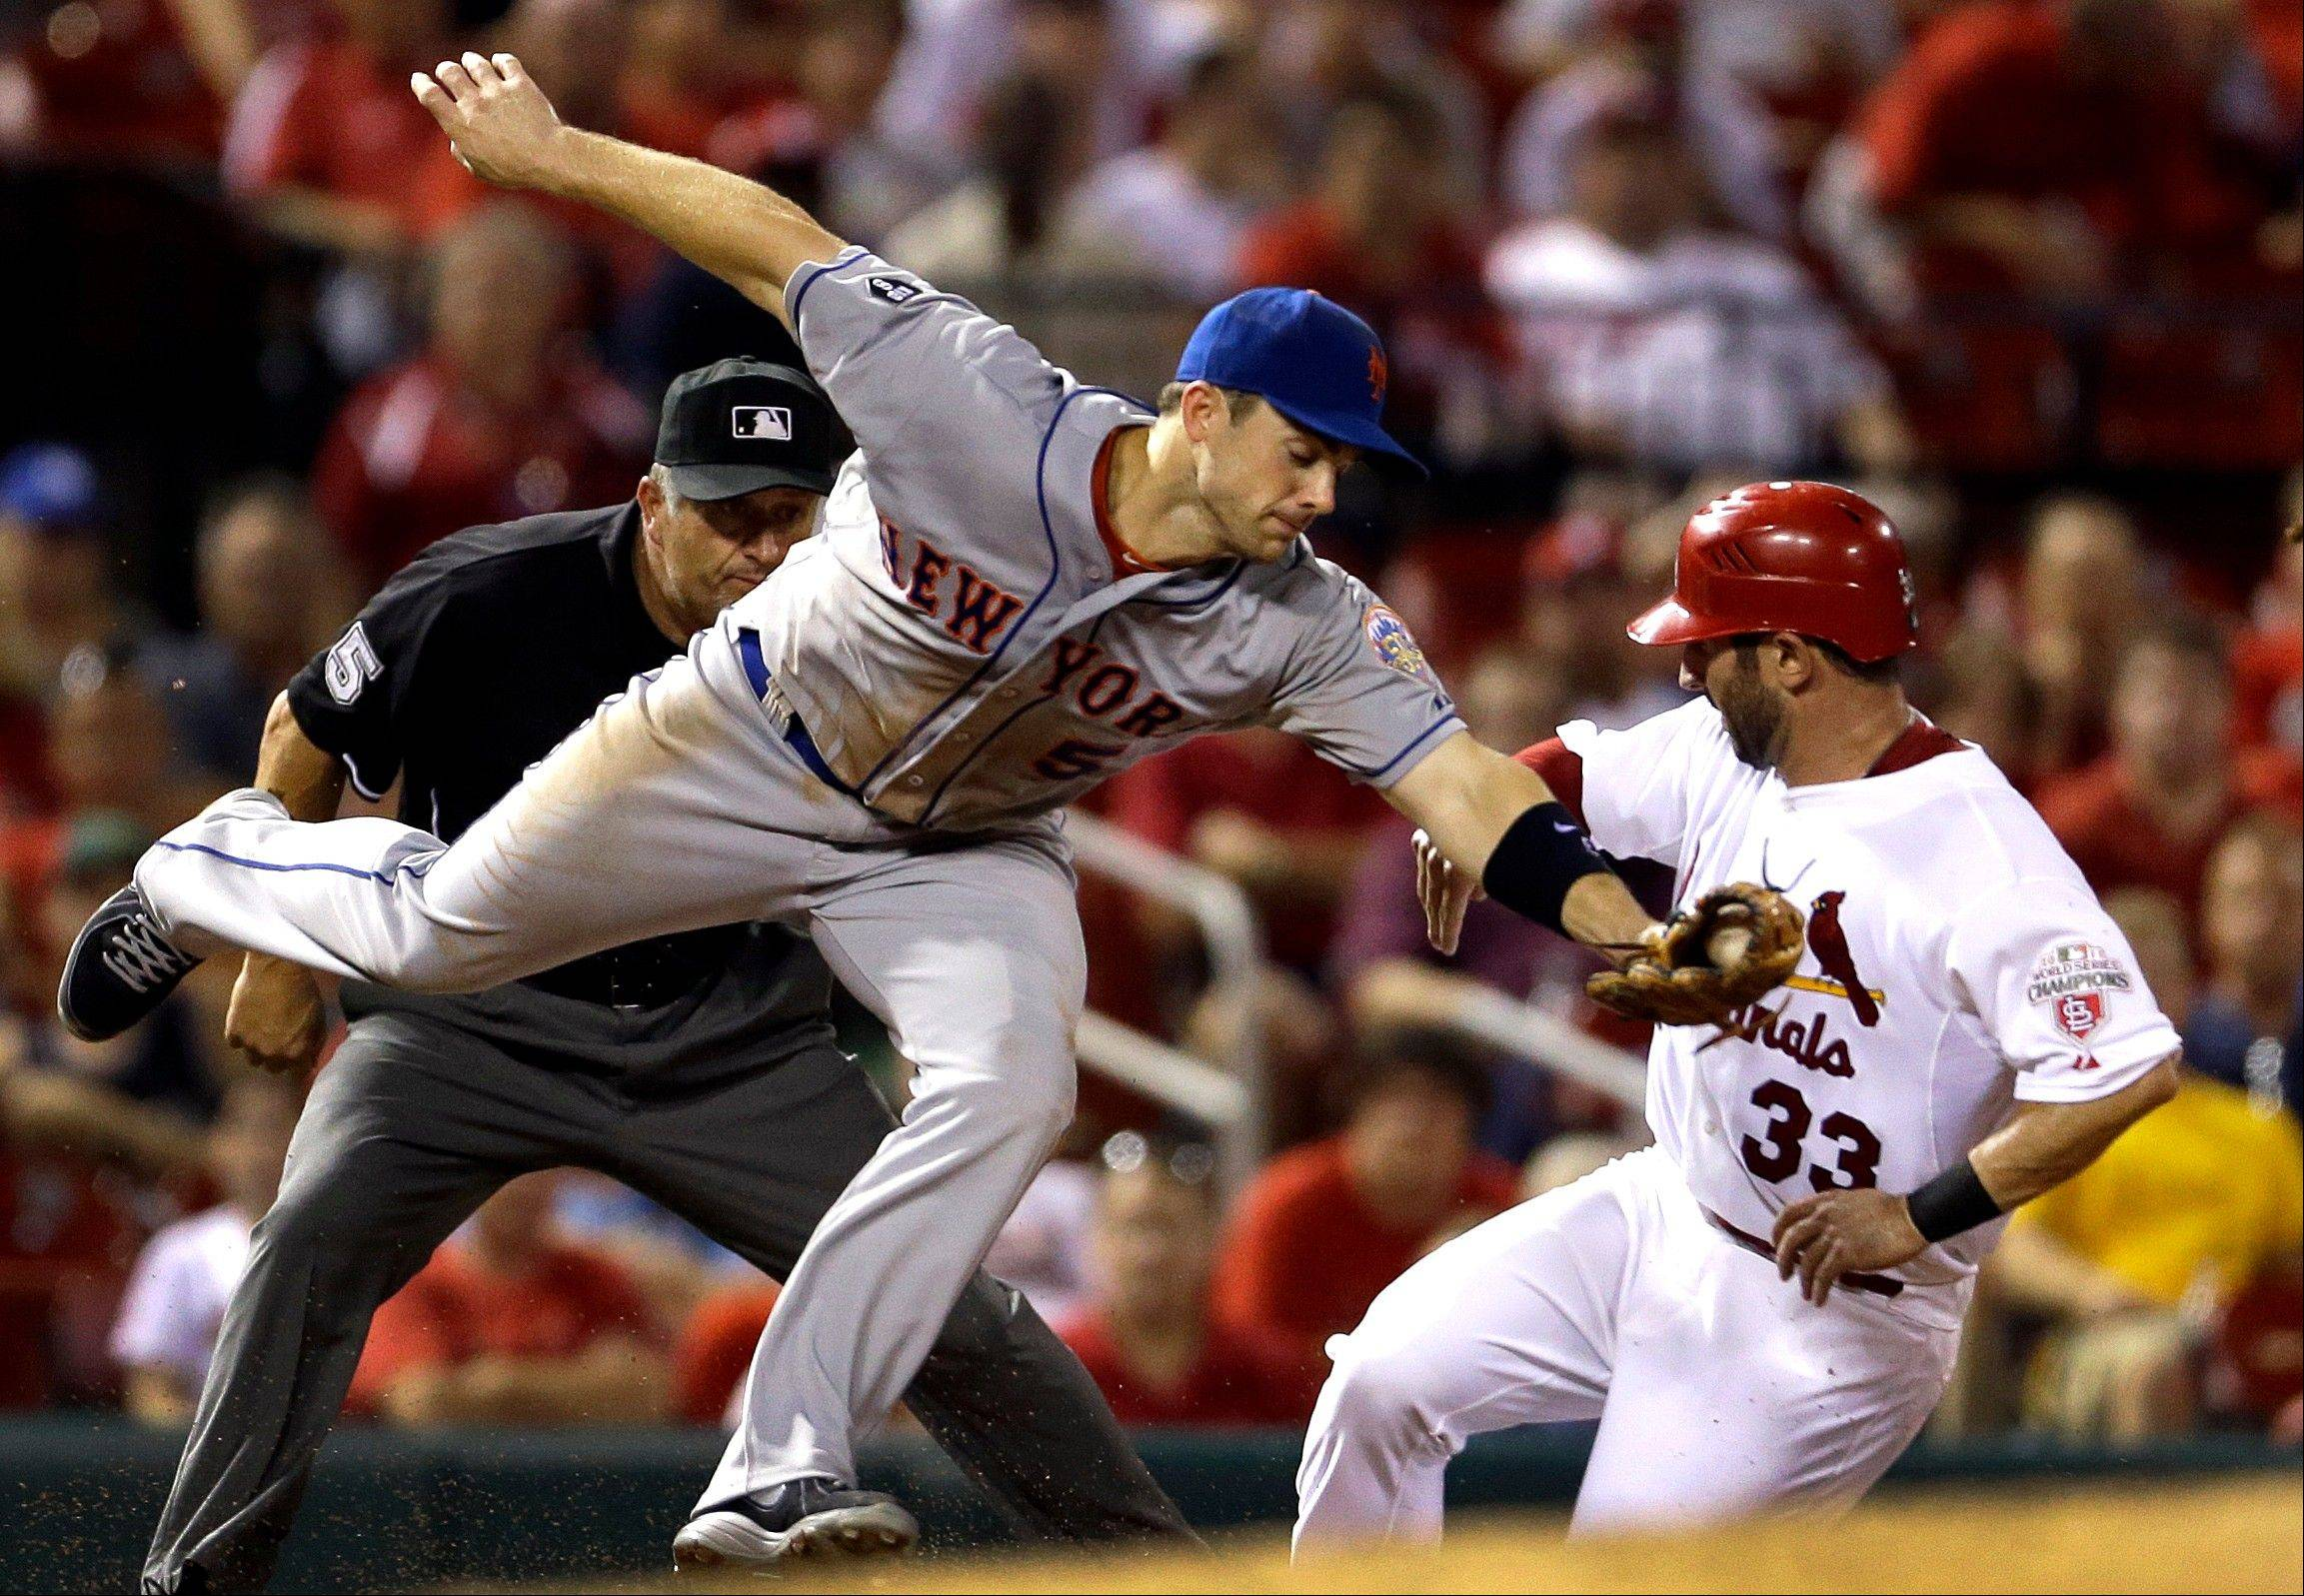 The Cardinals' Daniel Descalso steals third as New York Mets third baseman David Wright reaches for the throw during the sixth inning Tuesday in St. Louis.